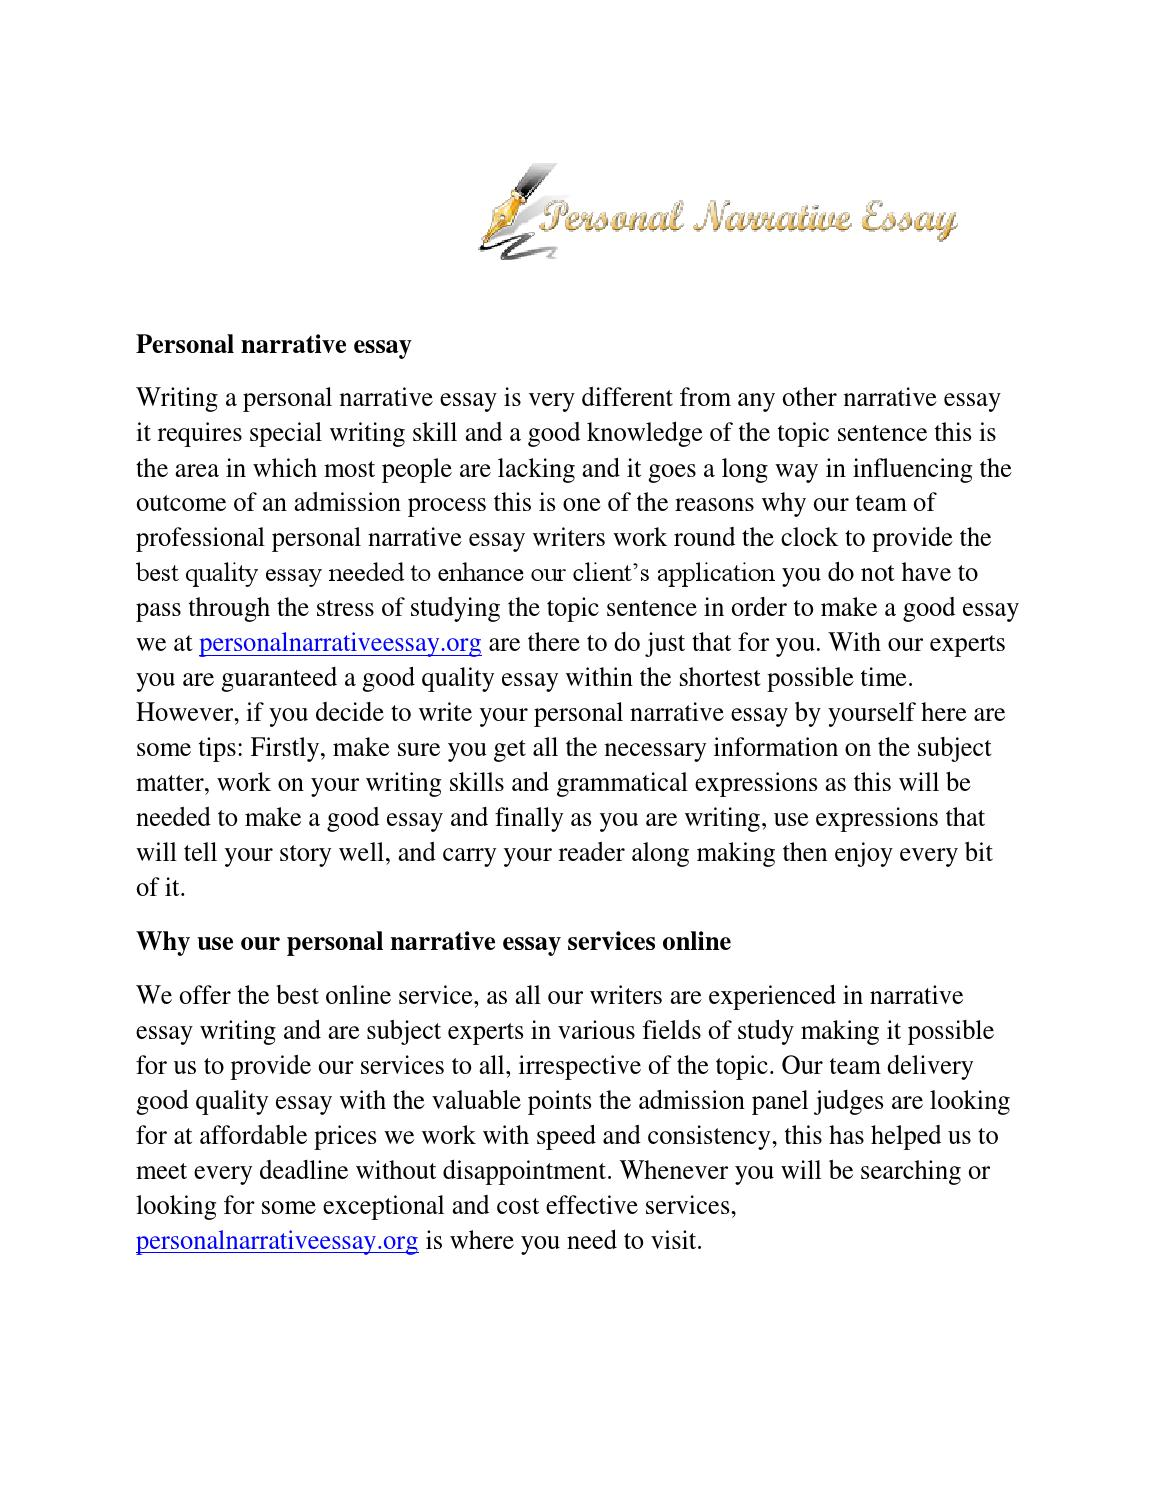 Experiential learning essays